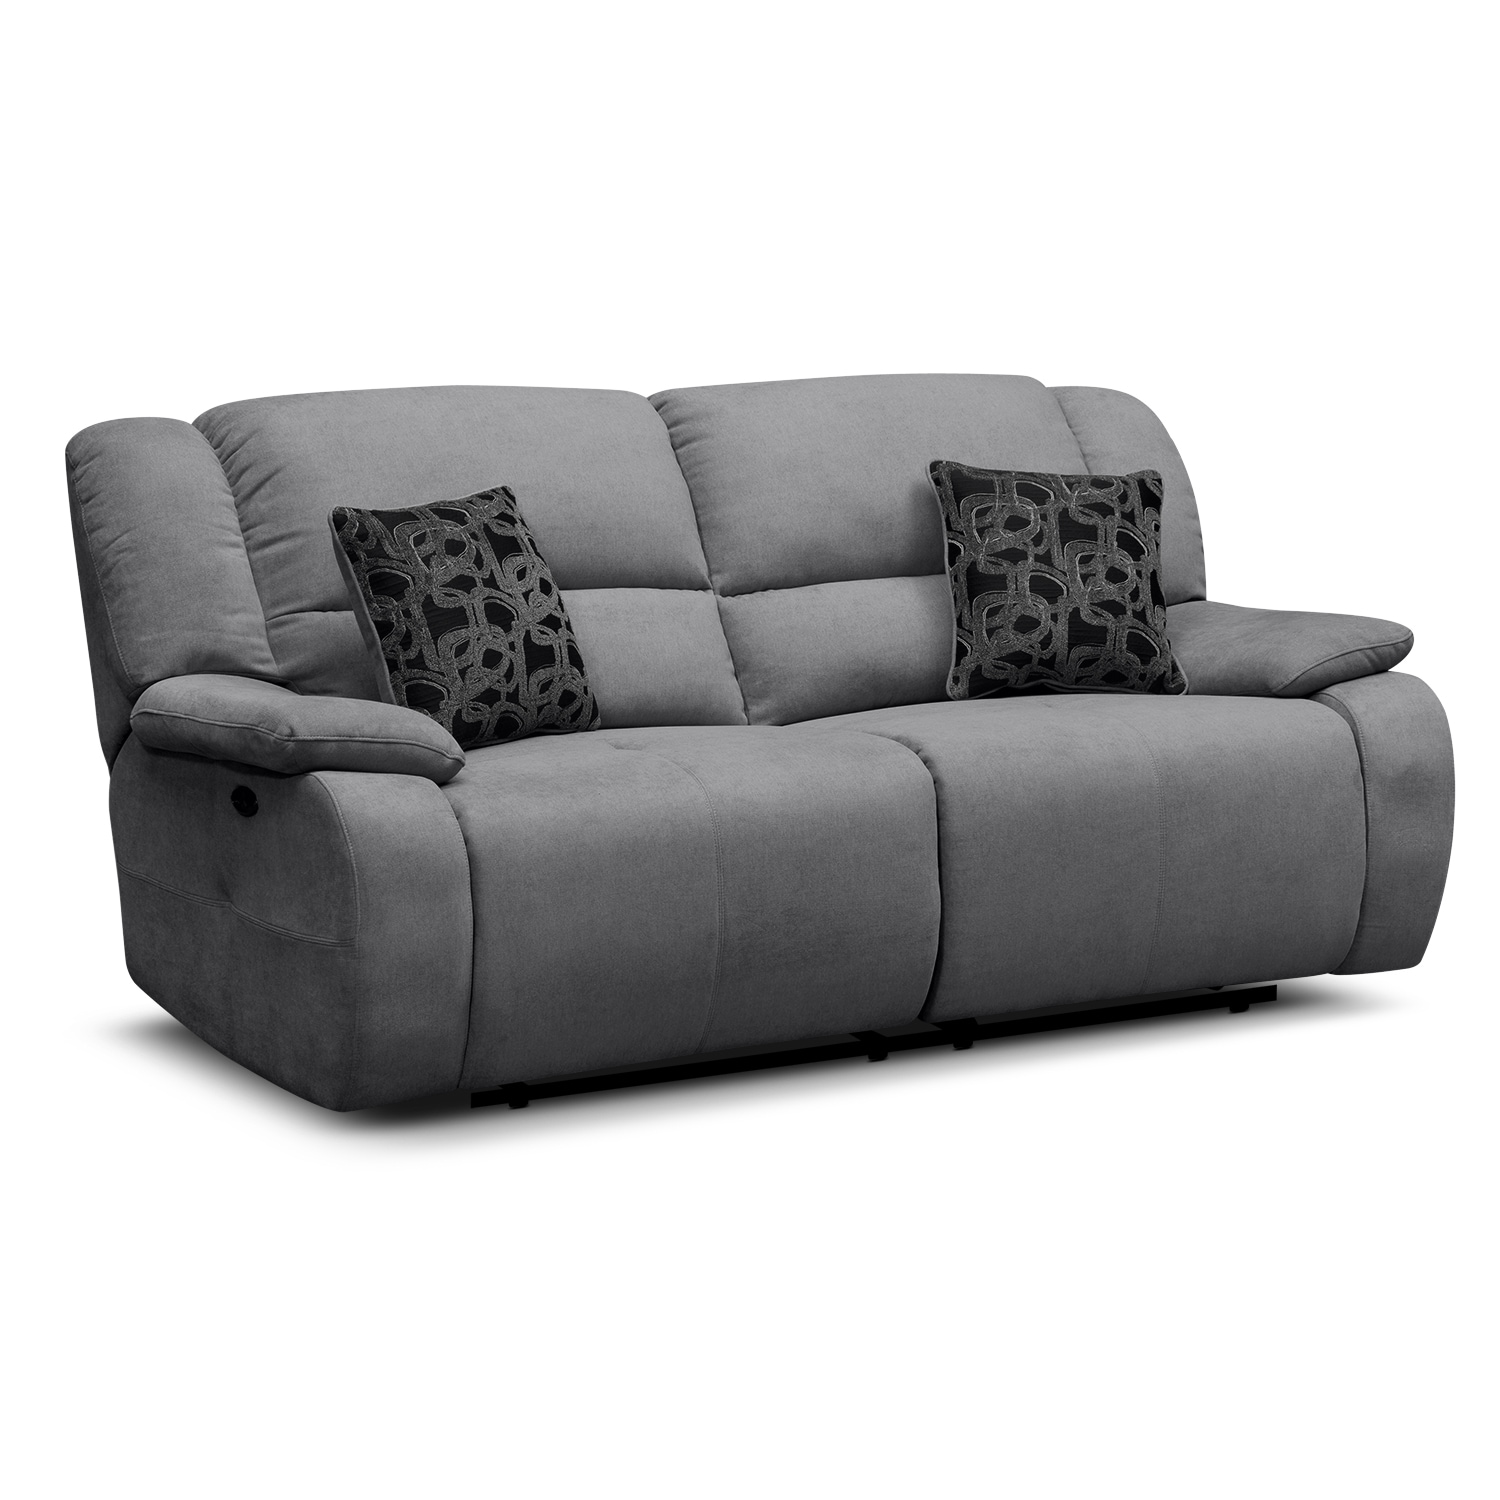 Living Room Furniture - Fortuna Gray Power Reclining Sofa